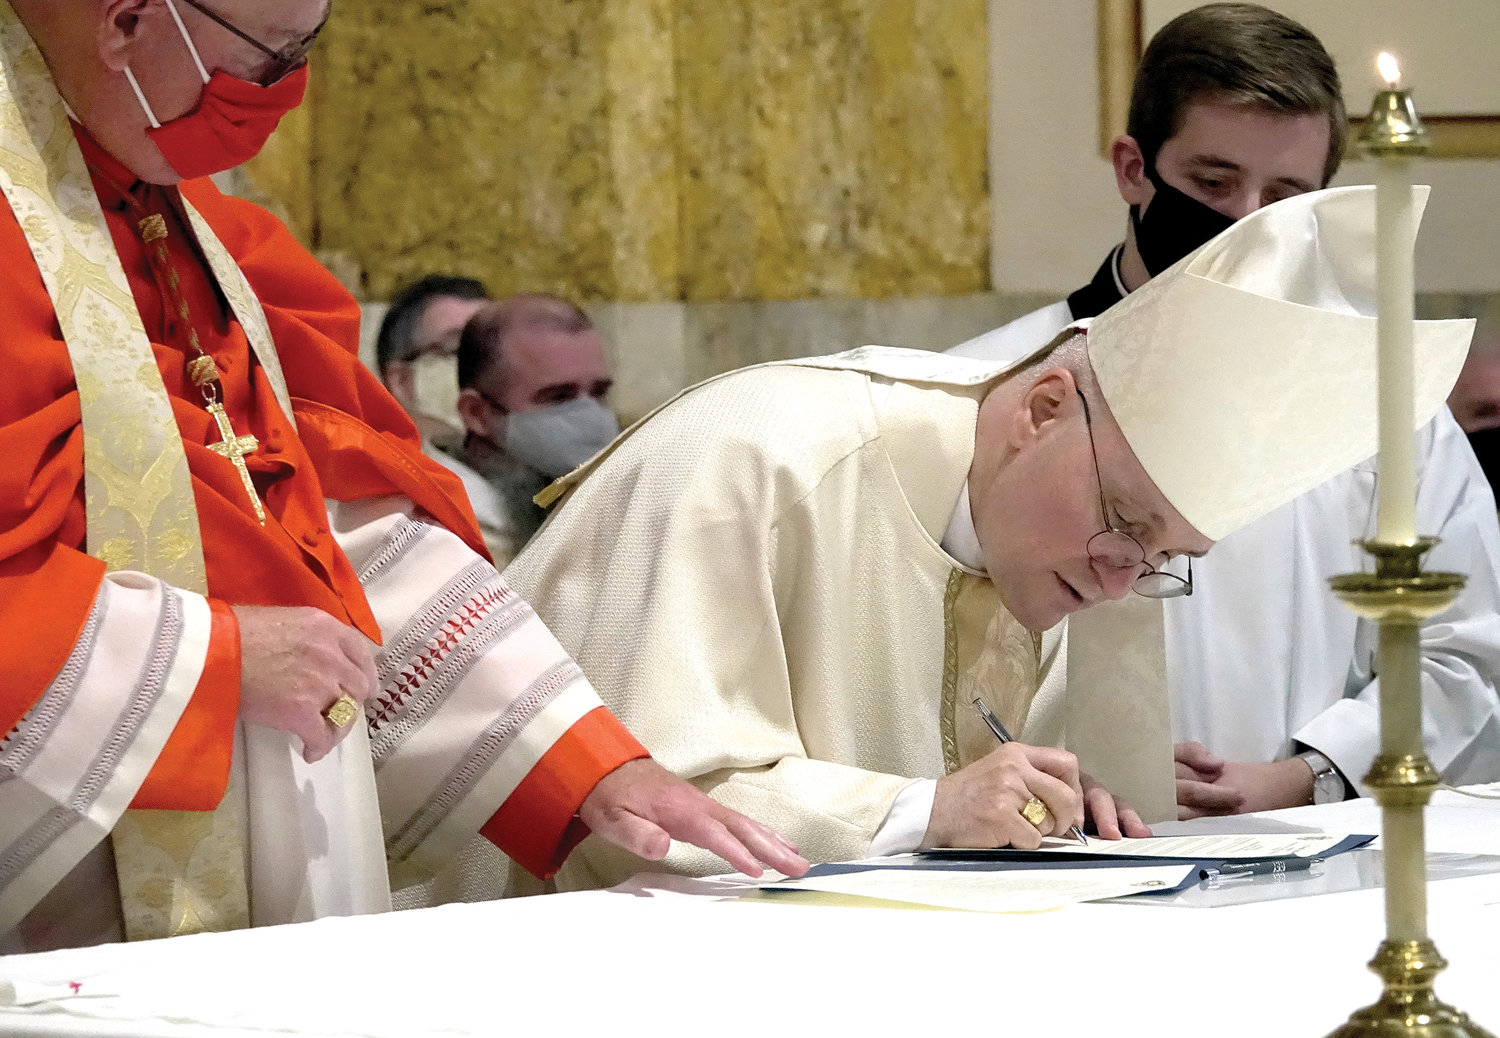 Auxiliary Bishop James Massa of Brooklyn signs oath of fidelity before Cardinal Dolan at the Sept. 13 Mass in which the bishop was officially installed as rector of St. Joseph's Seminary, Dunwoodie.